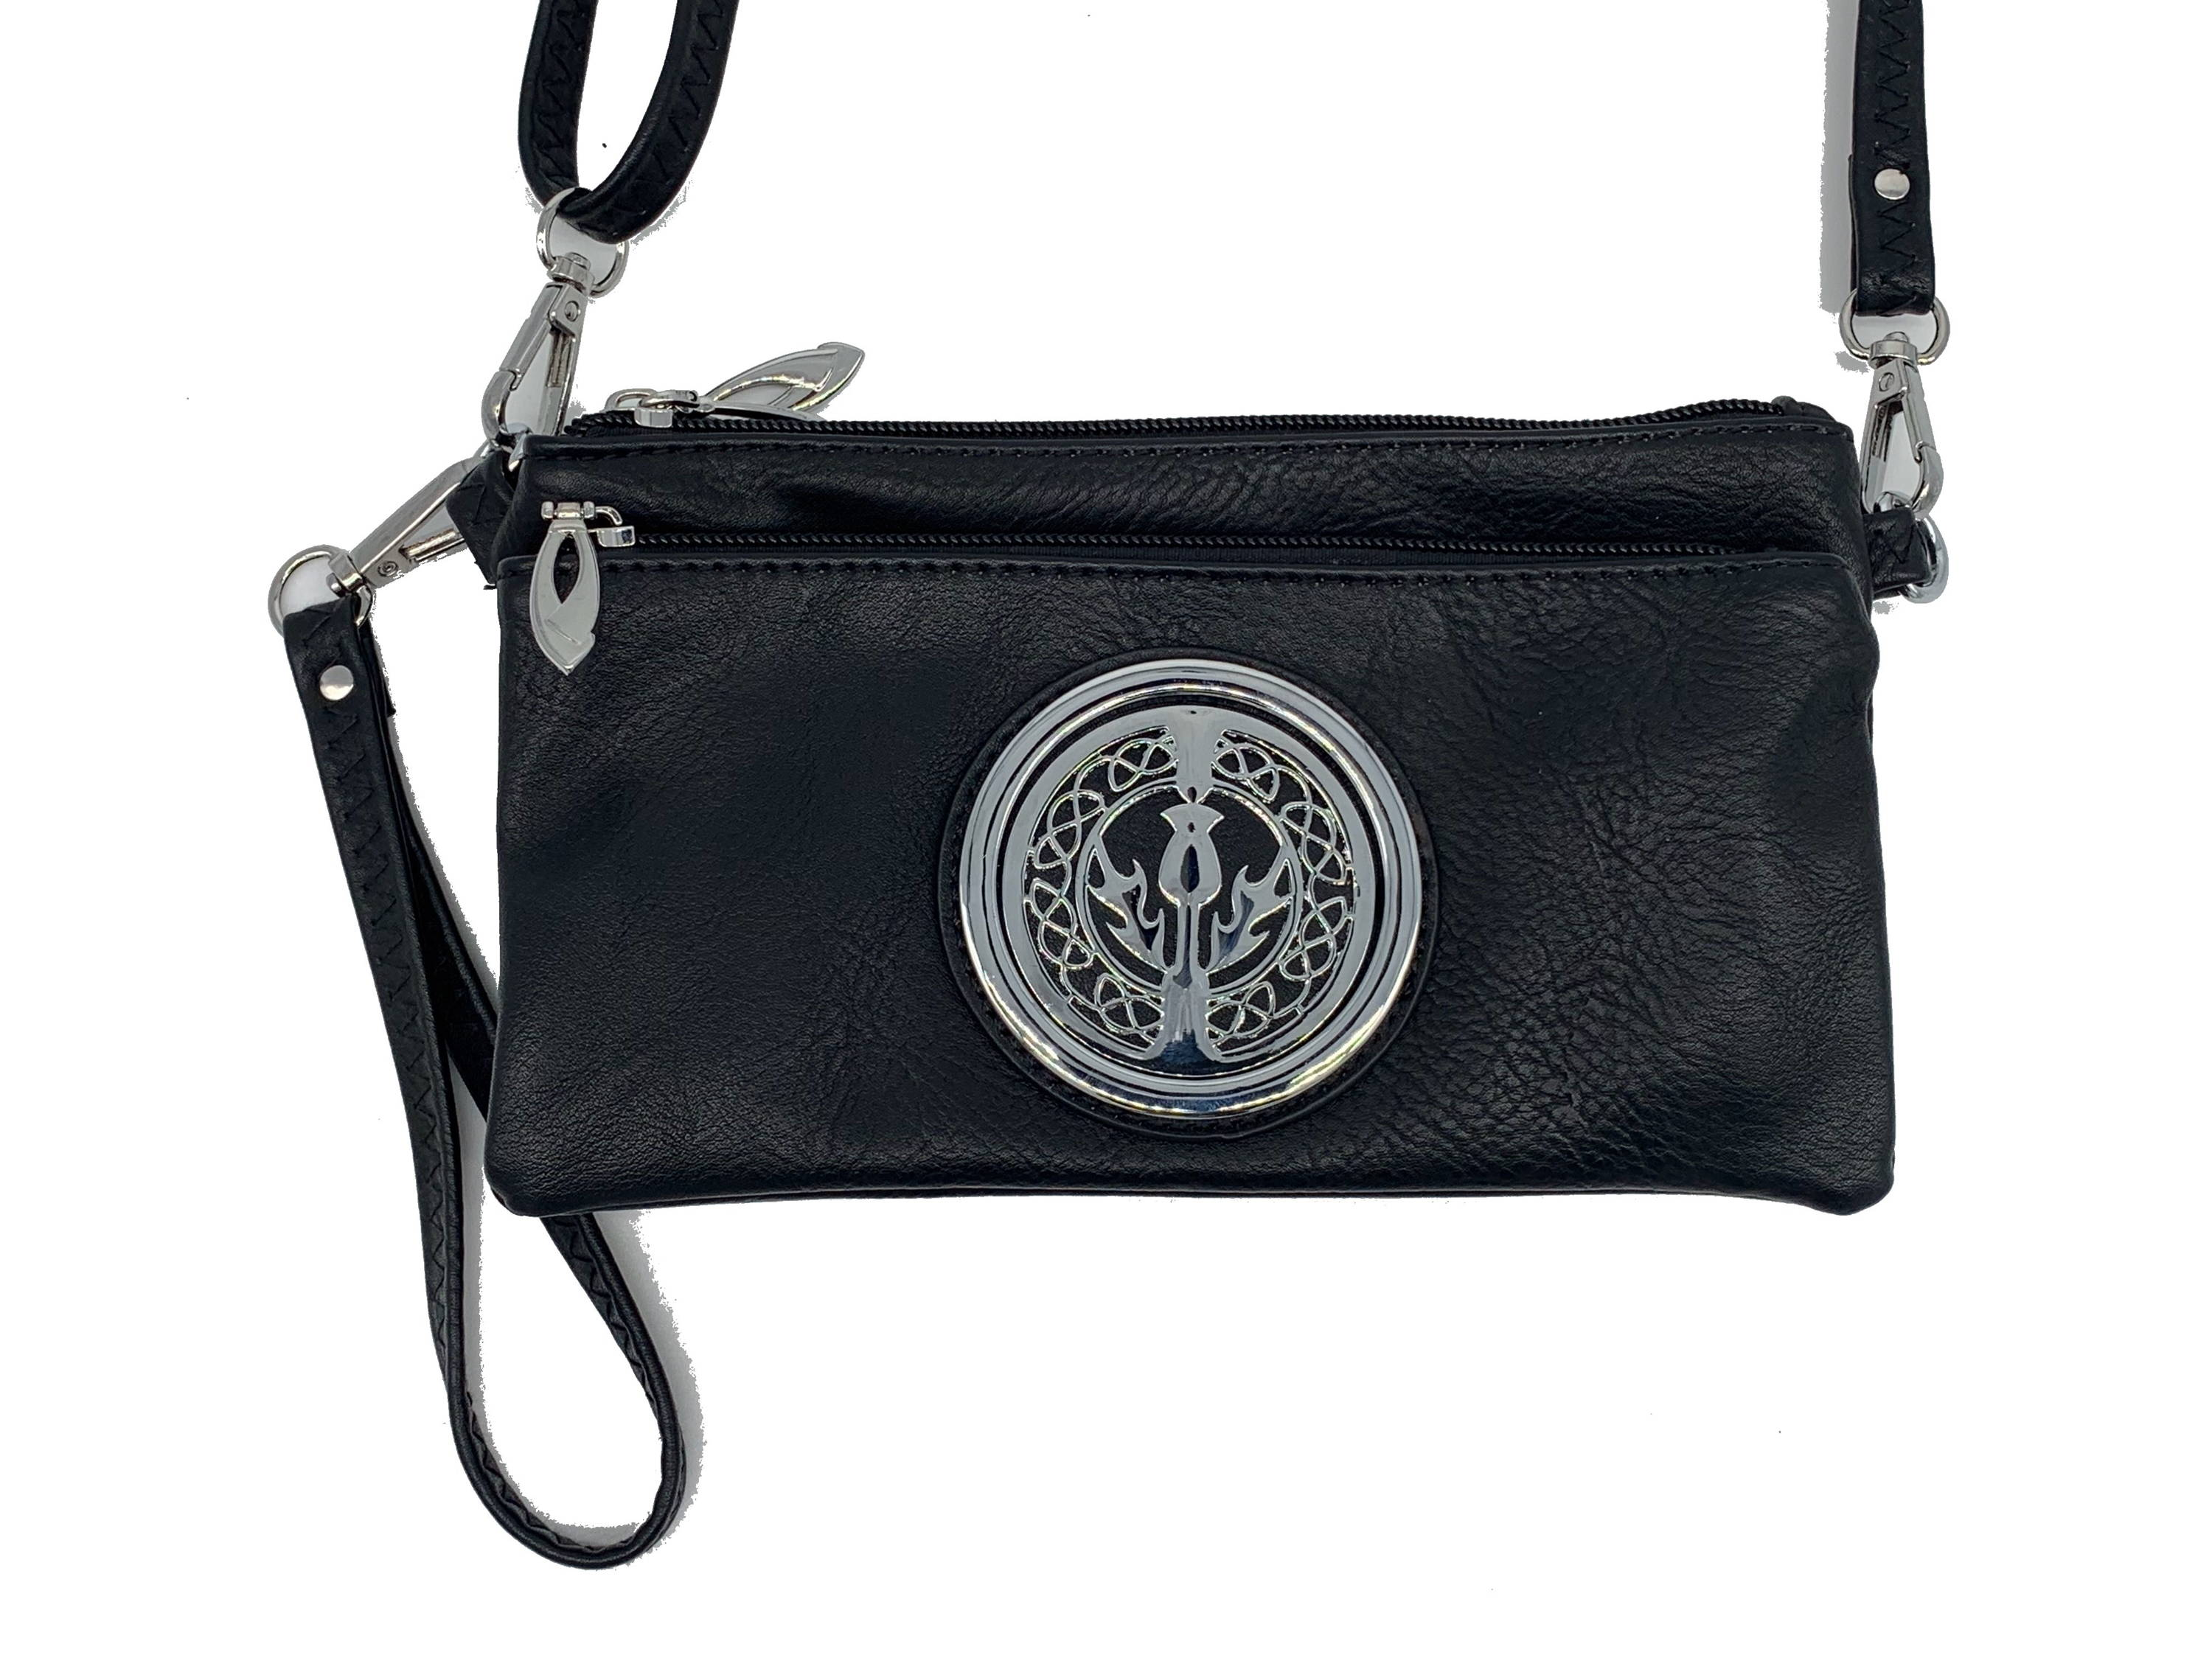 The Celtic Bag Co. Tri Zip Cell Phone Bag